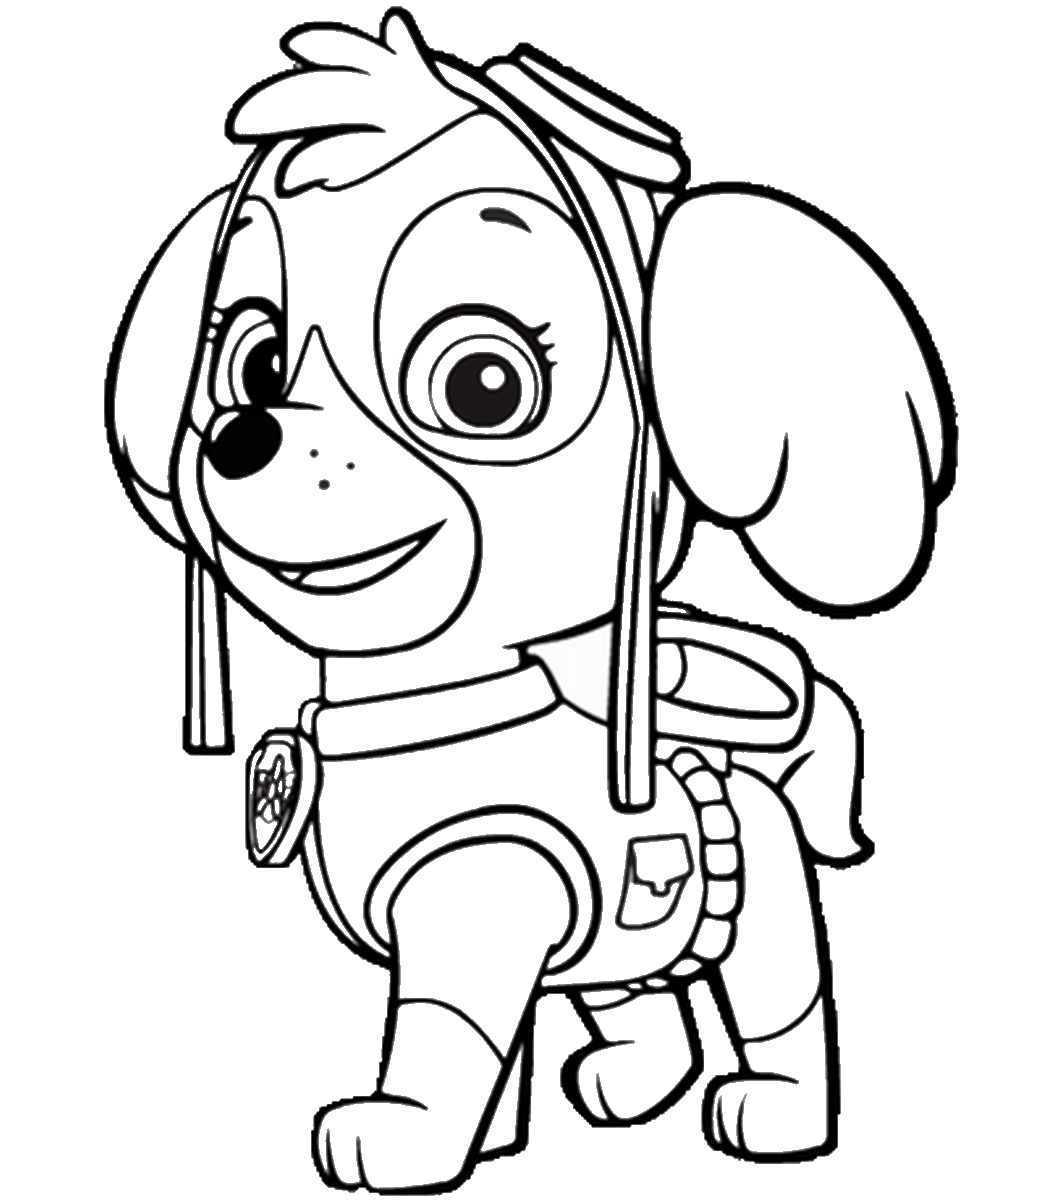 Paw Patrol Coloring Pages - Best Coloring Pages For Kids - Free Printable Paw Patrol Coloring Pages